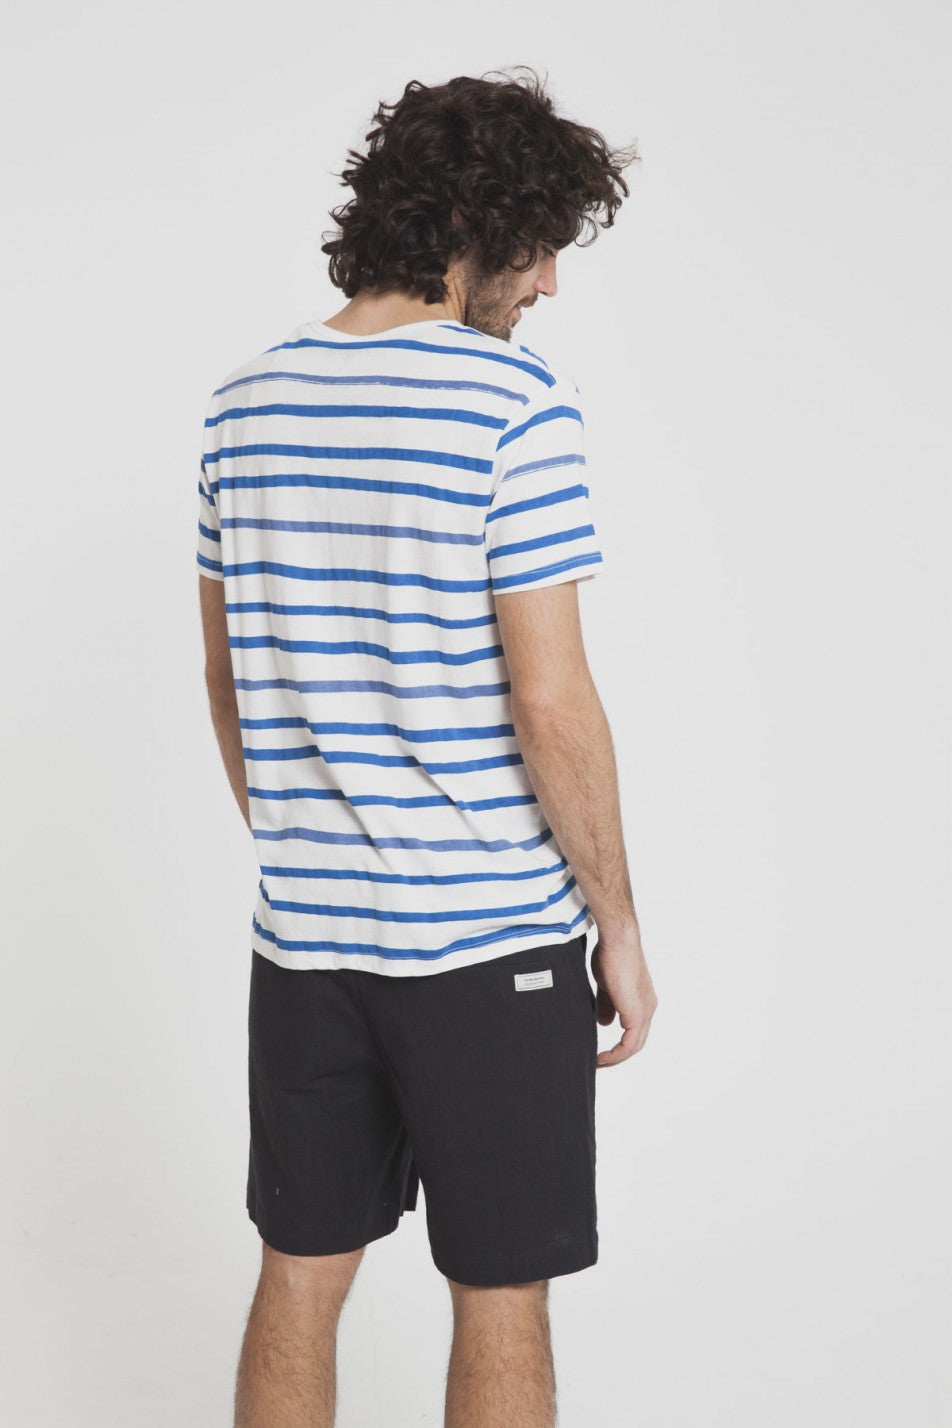 AQUARELA BLUE STRIPES T-SHIRT - justBrazil store